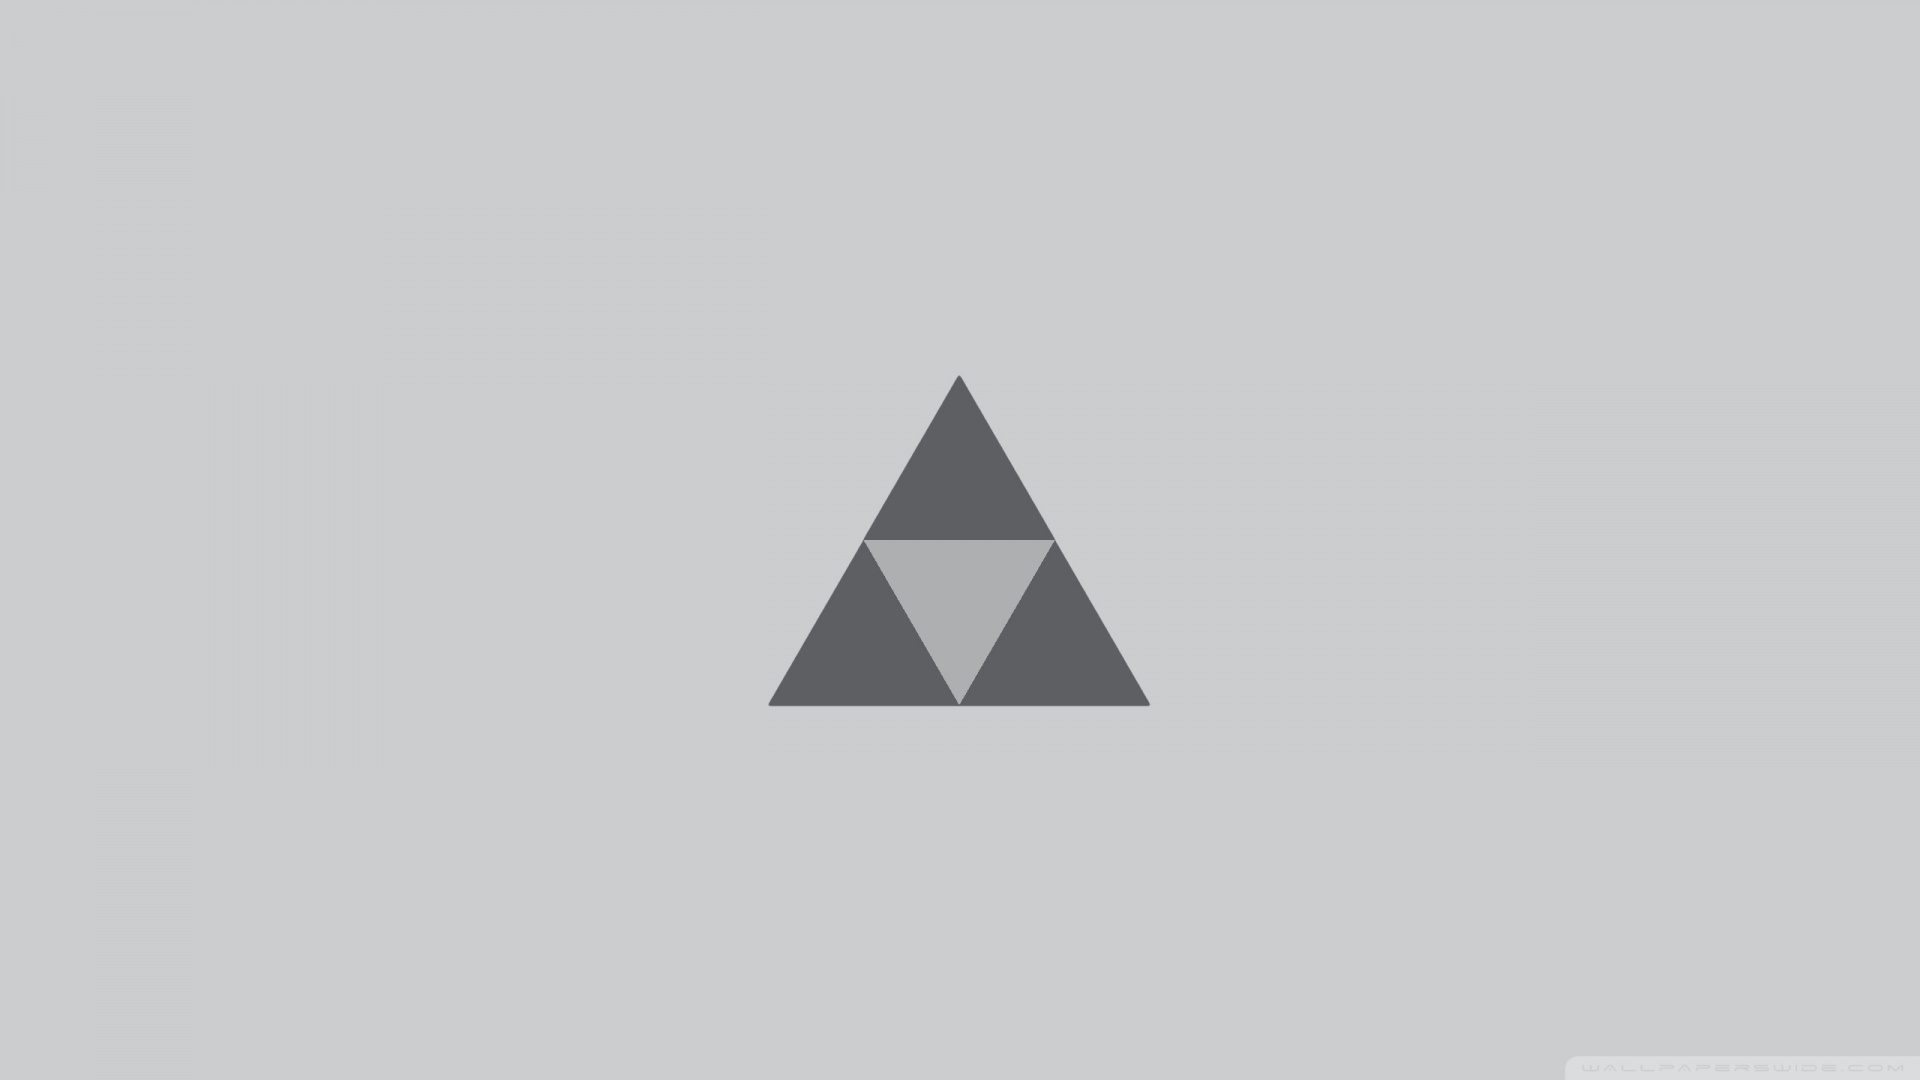 Triforce Wallpaper 1080p 1920x1080 triforce the legend 1920x1080